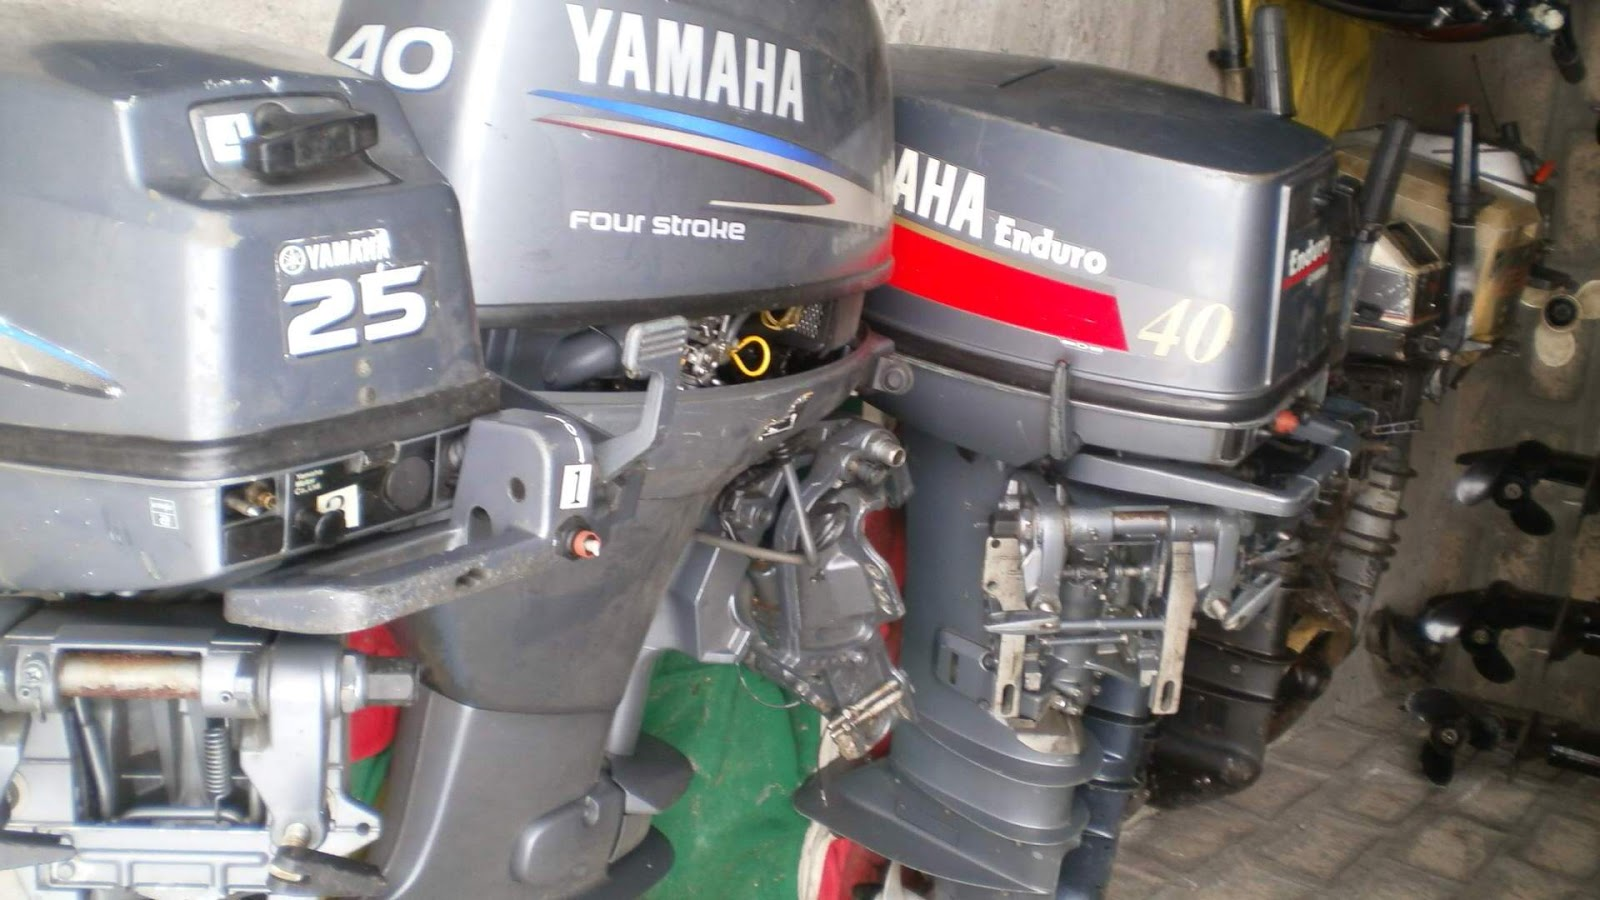 40 hp outboard boat engines used second hand marine for Yamaha outboard motor dealers